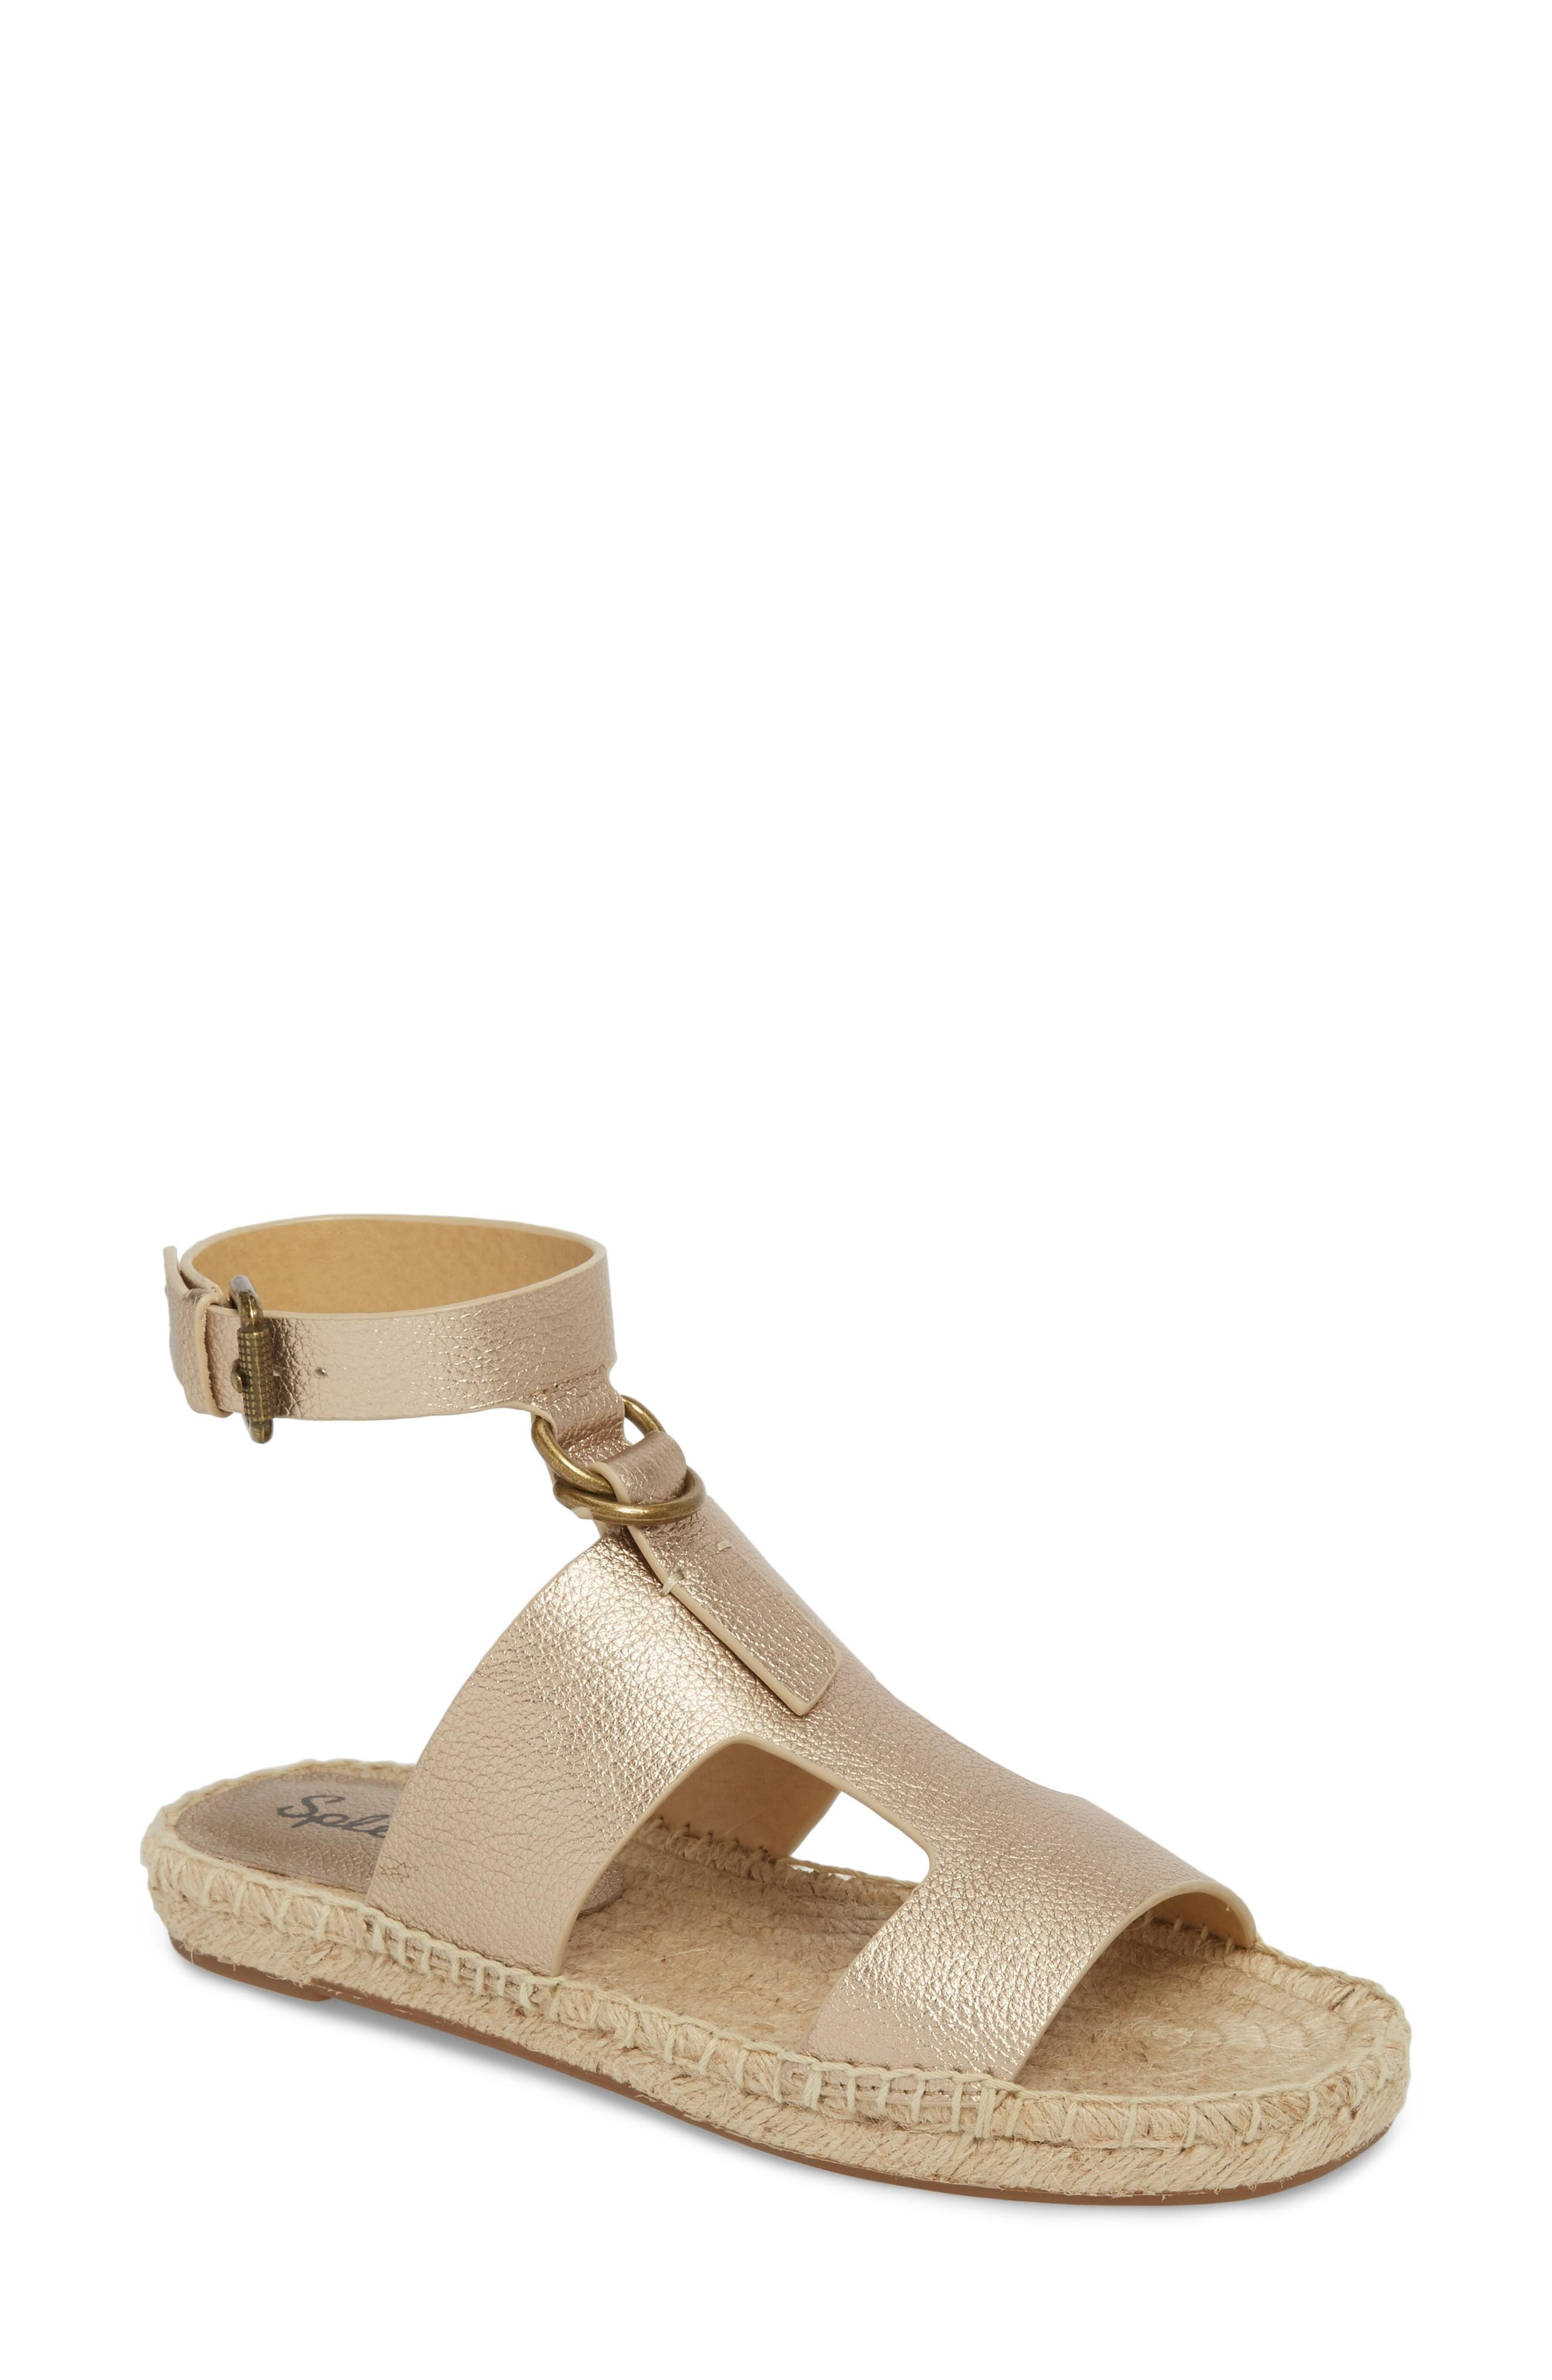 Splendid Farley Espadrille Sandal In Champagne Leather